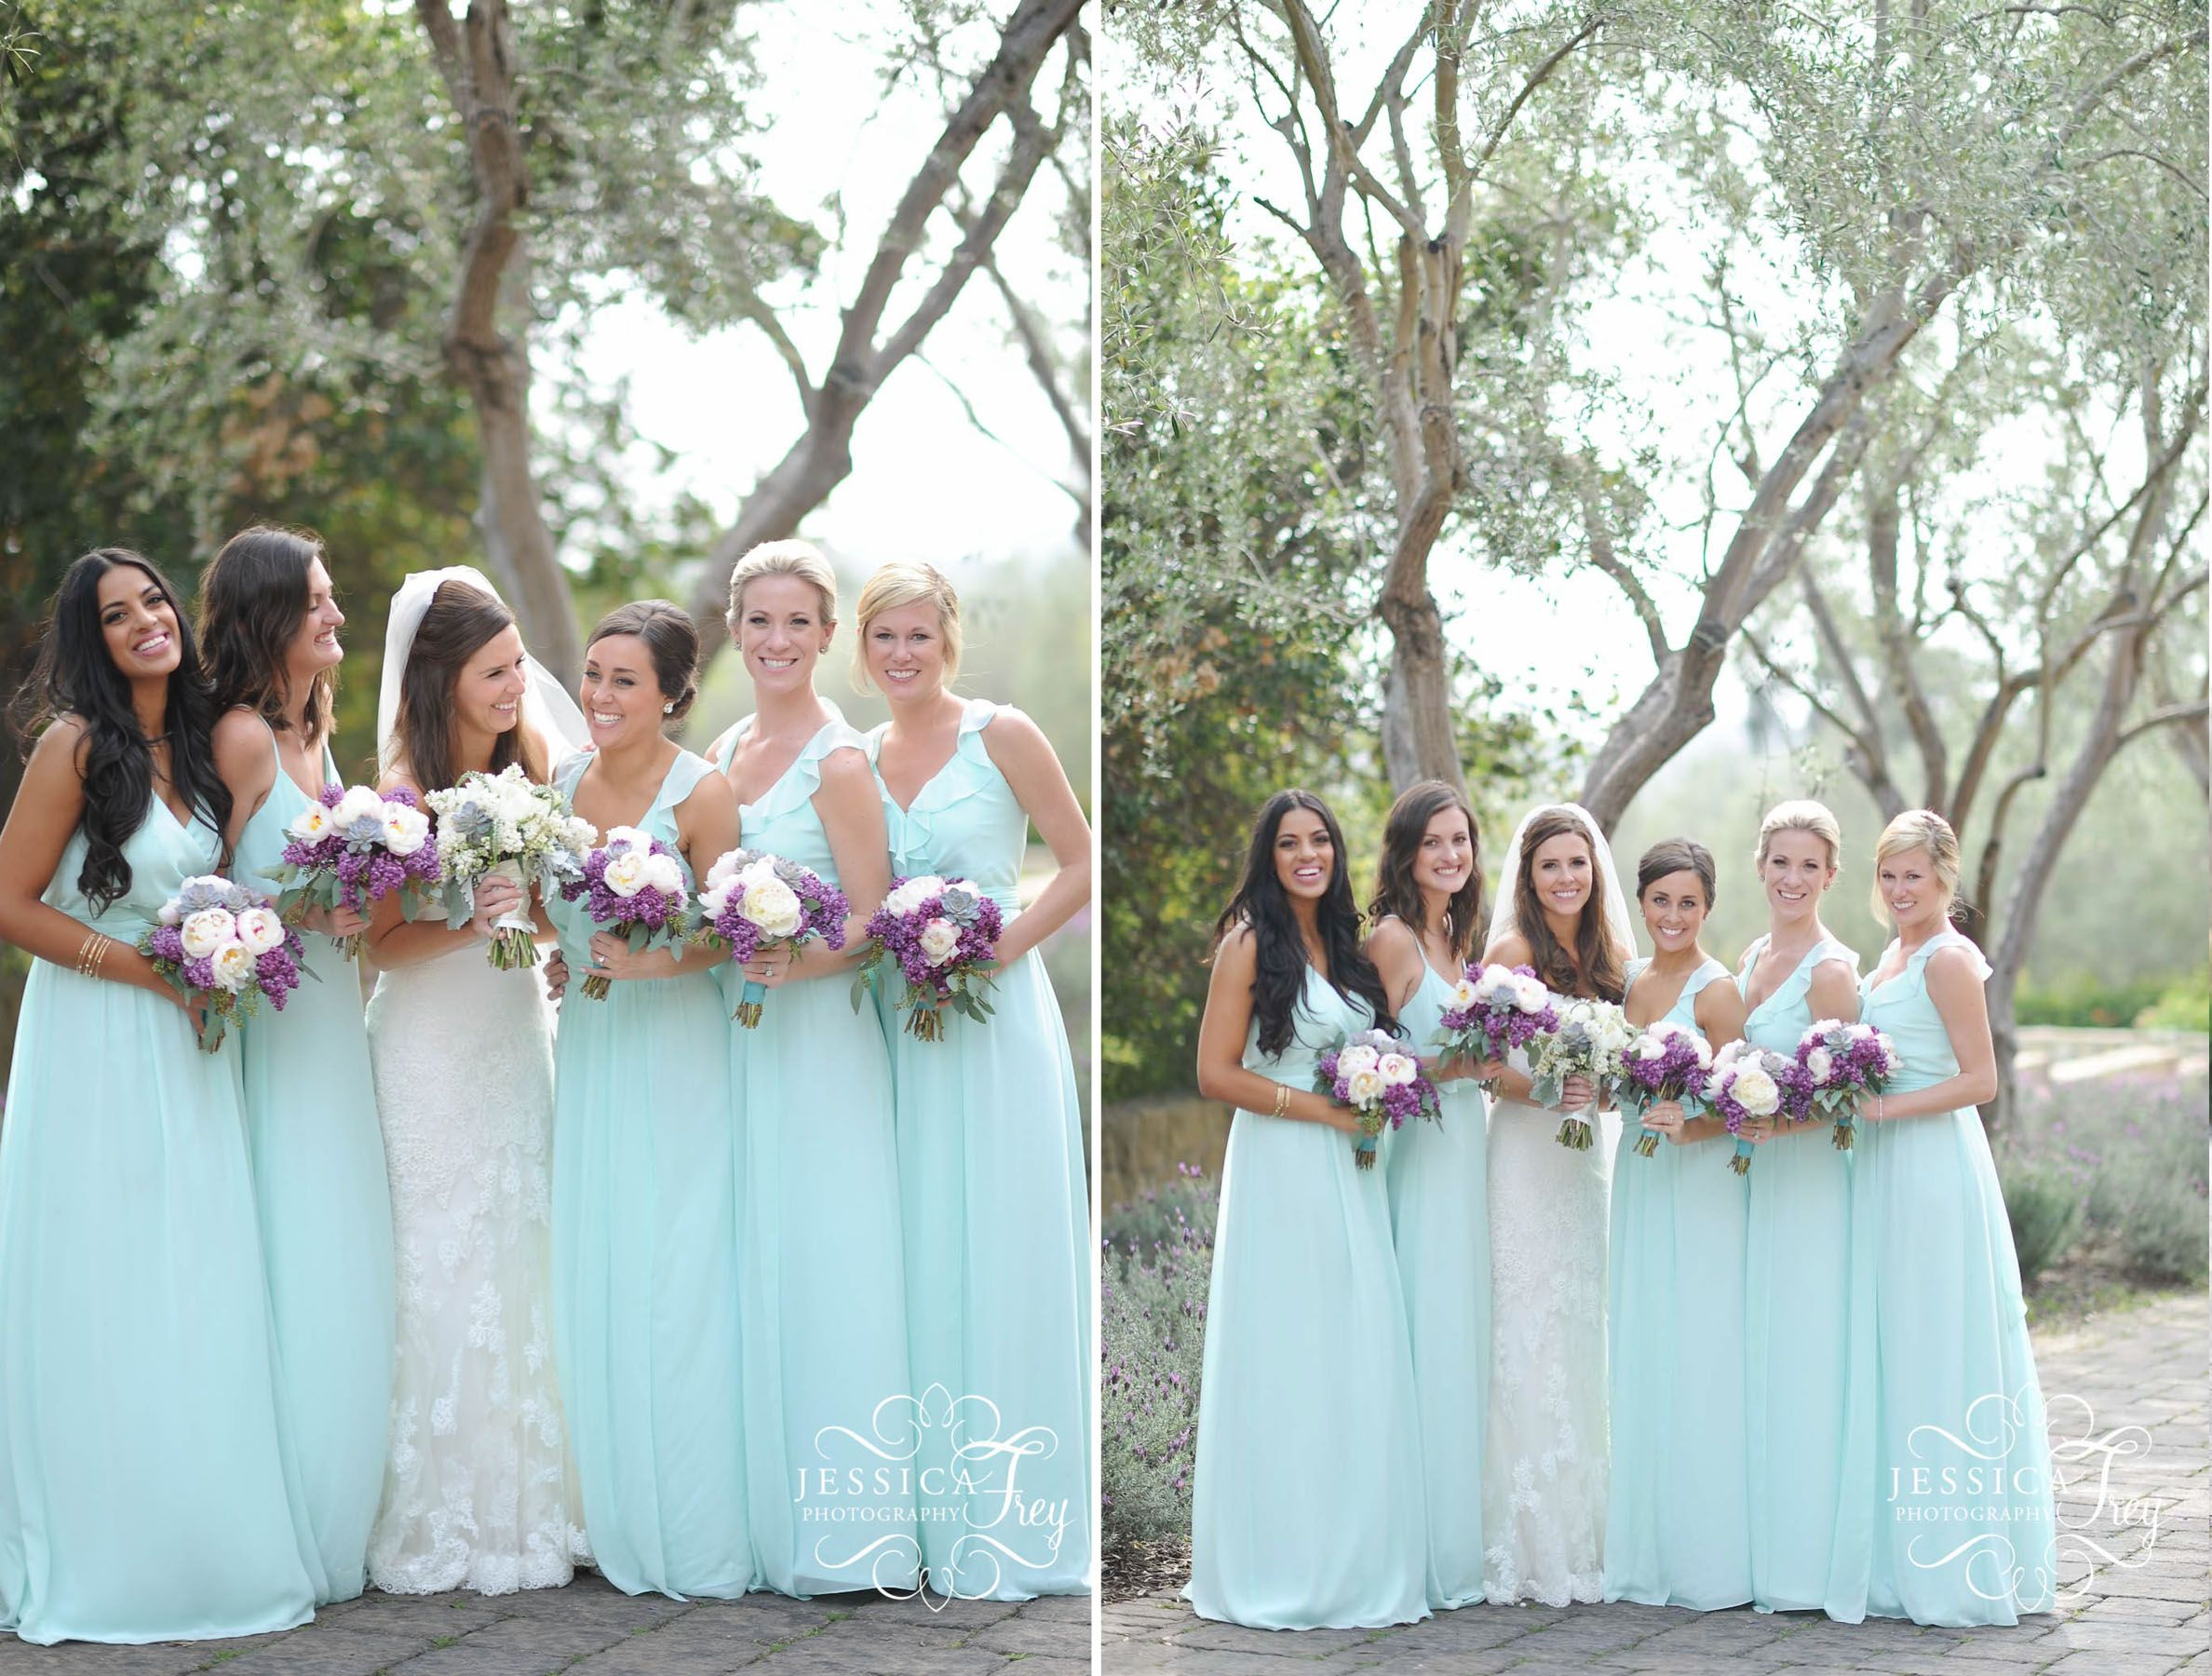 Jessica frey photography santa barbara wedding joanna august bridesmaid ombrellifo Images